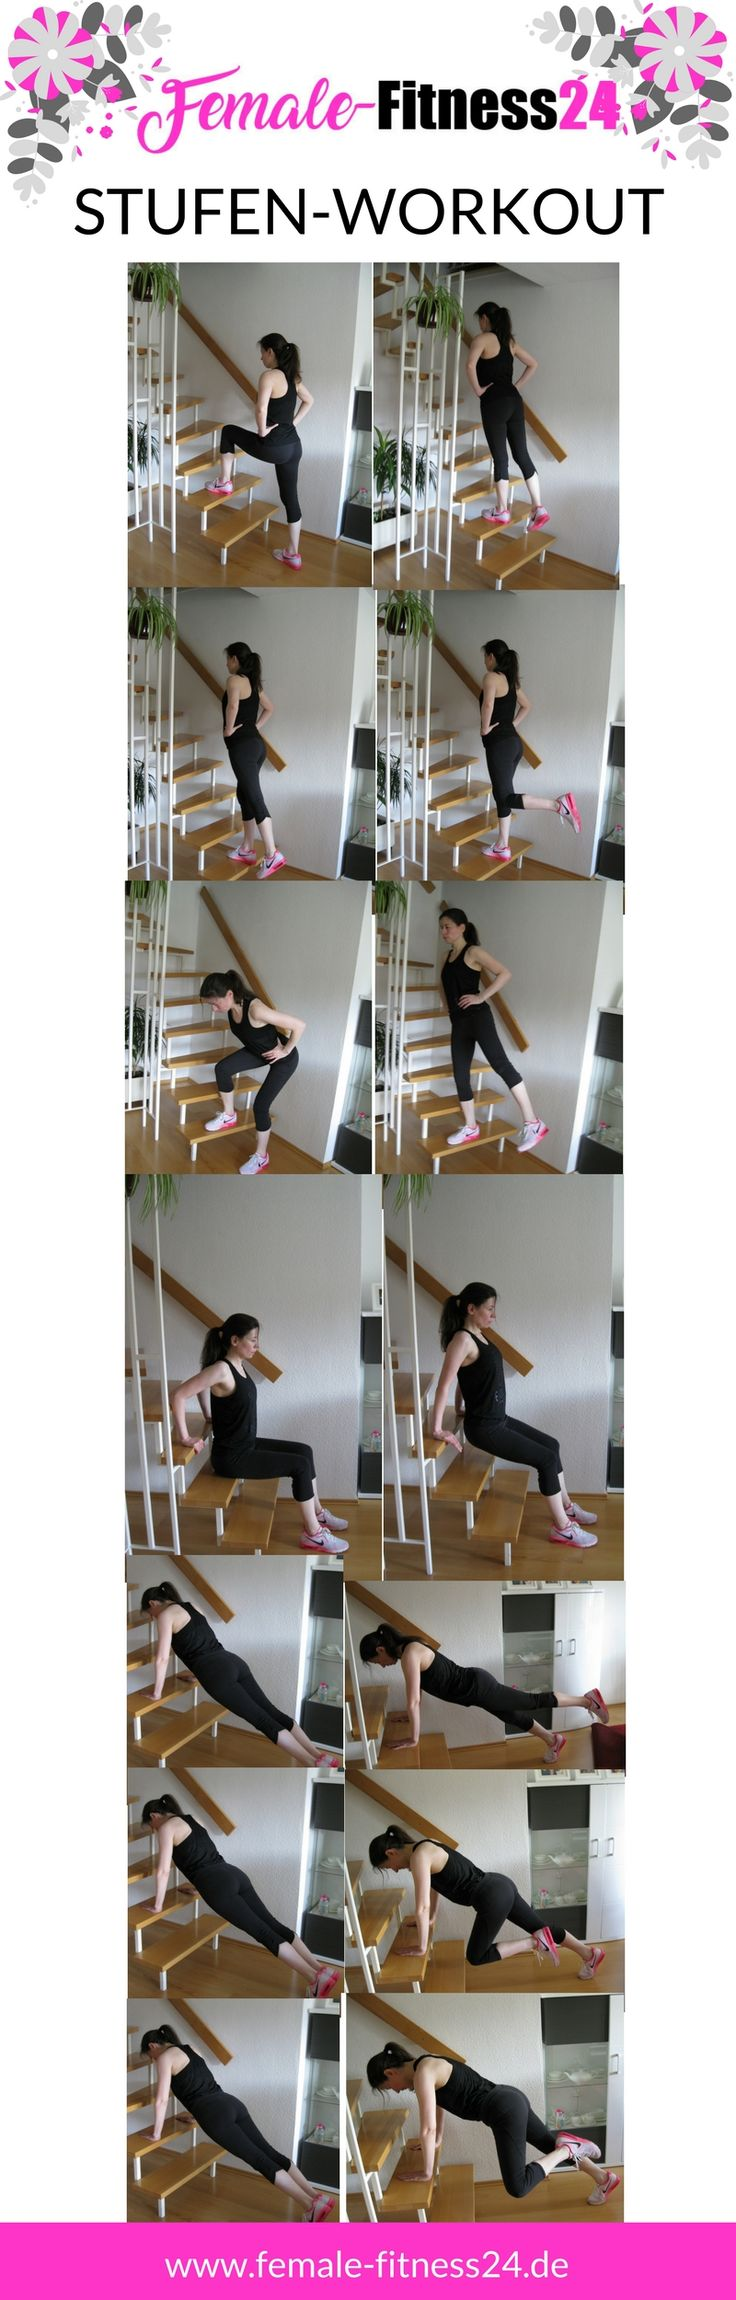 Stufen-Workout für Frauen für zu Hause oder im Freien. Trainiere Bauch, Beine, Po, Arme und Schultern.  #workout #training #workoutroutine #athome #fitness #sport #bodyweightworkouts #femalefitness24